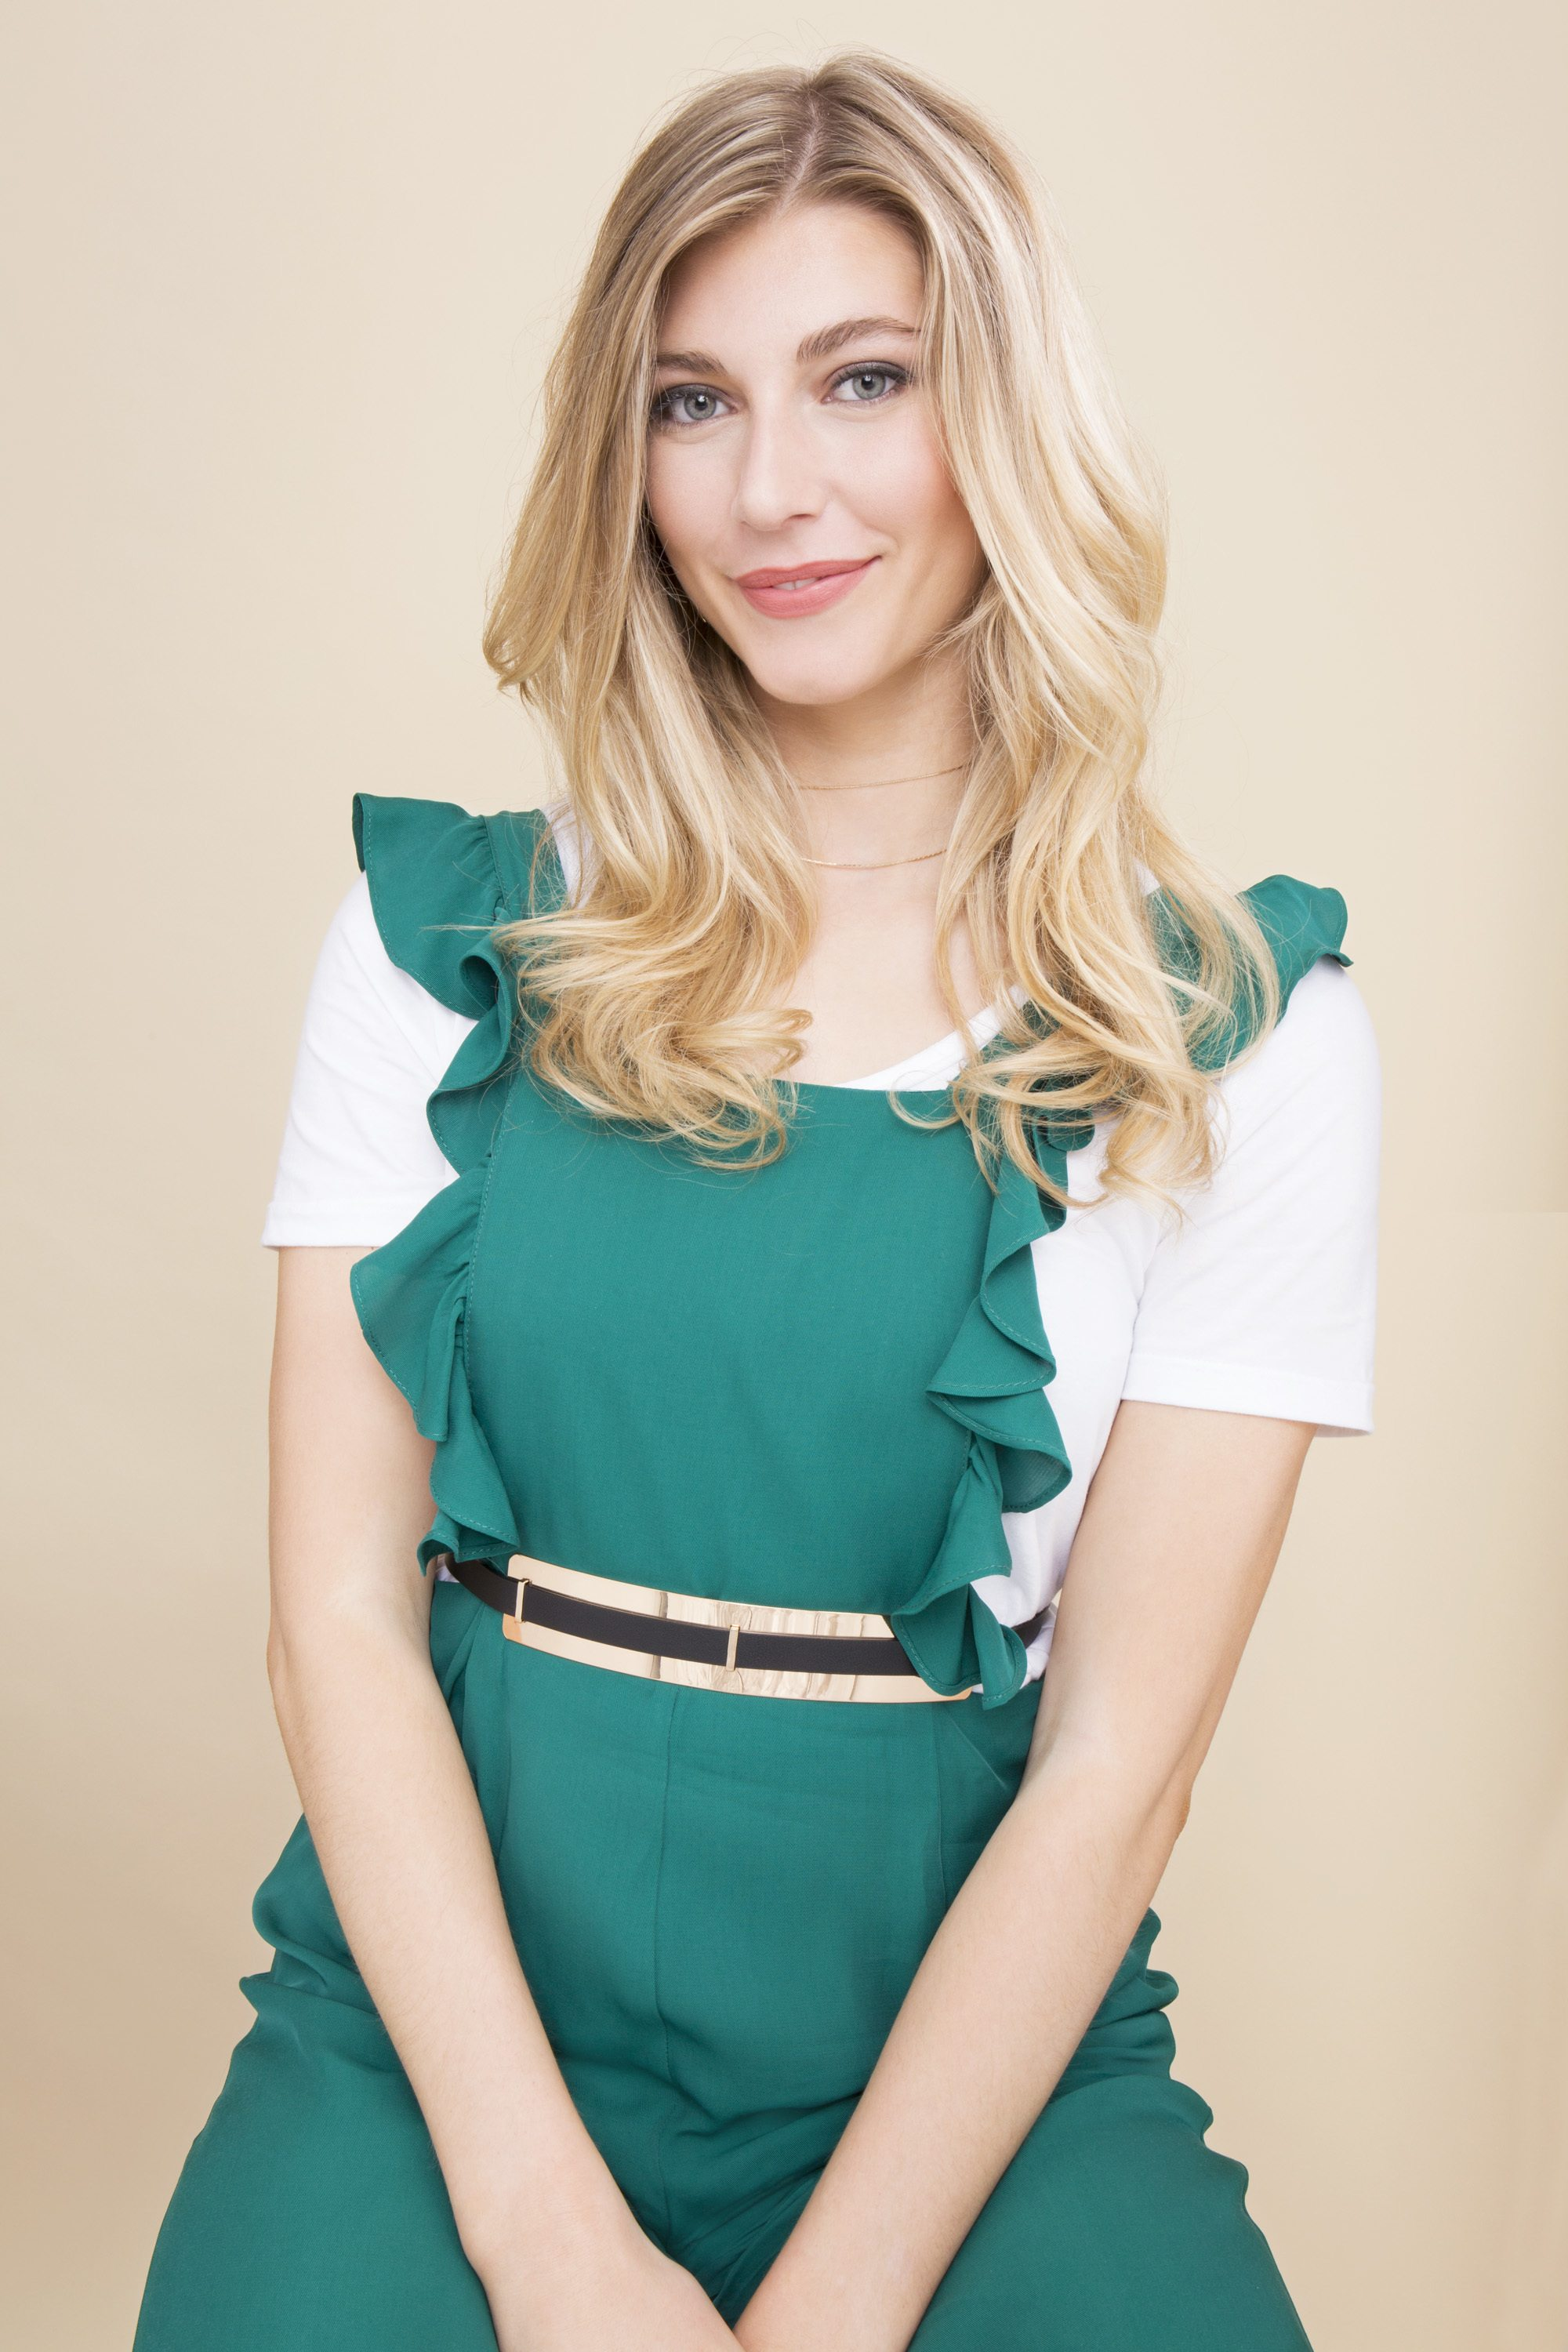 blonde woman with soft curls in a green dress